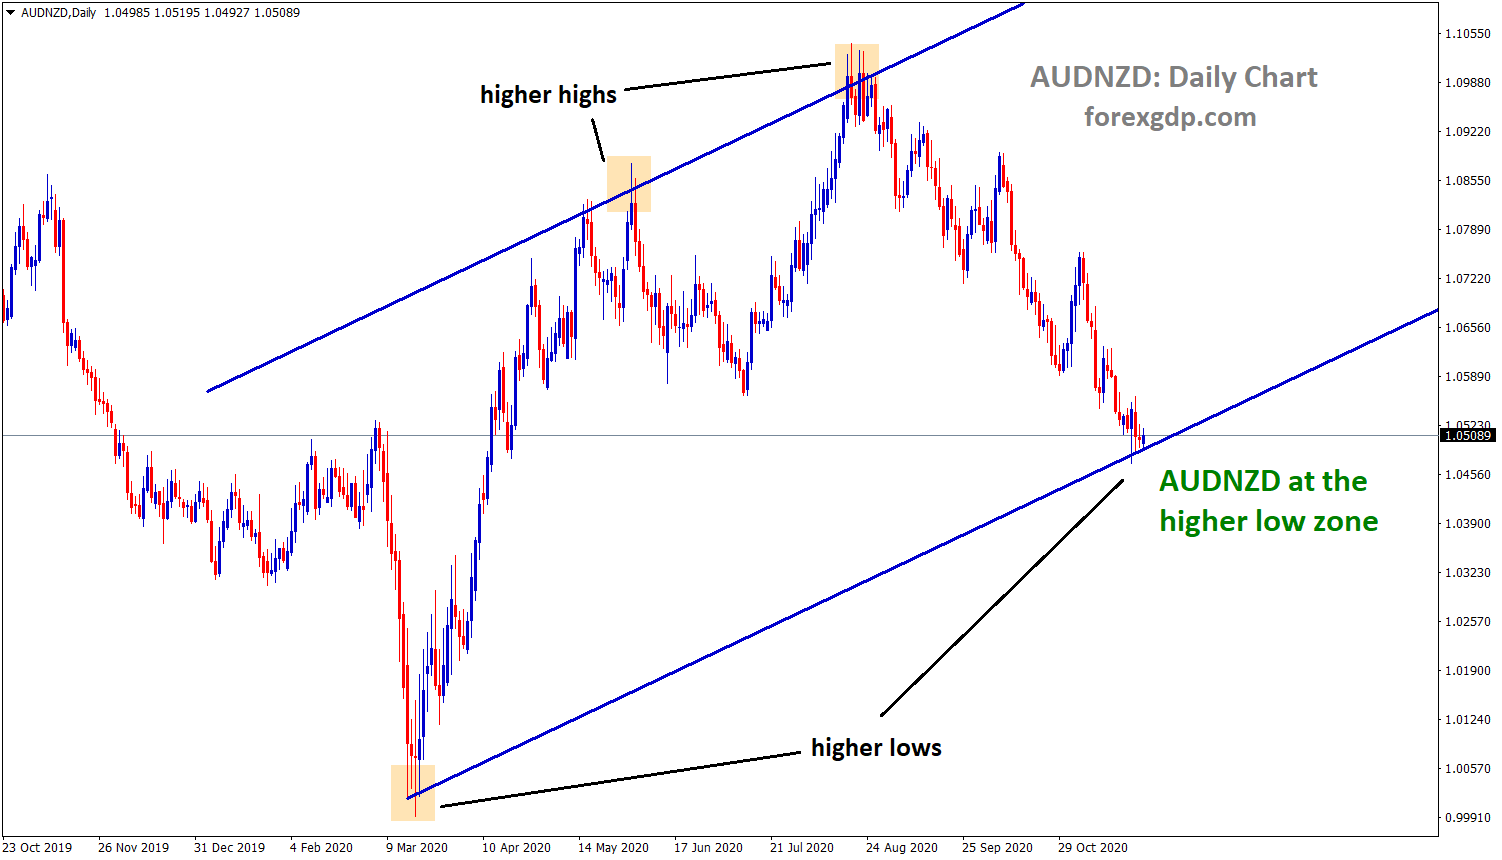 audnzd at the higher low zone in the daily tf chart